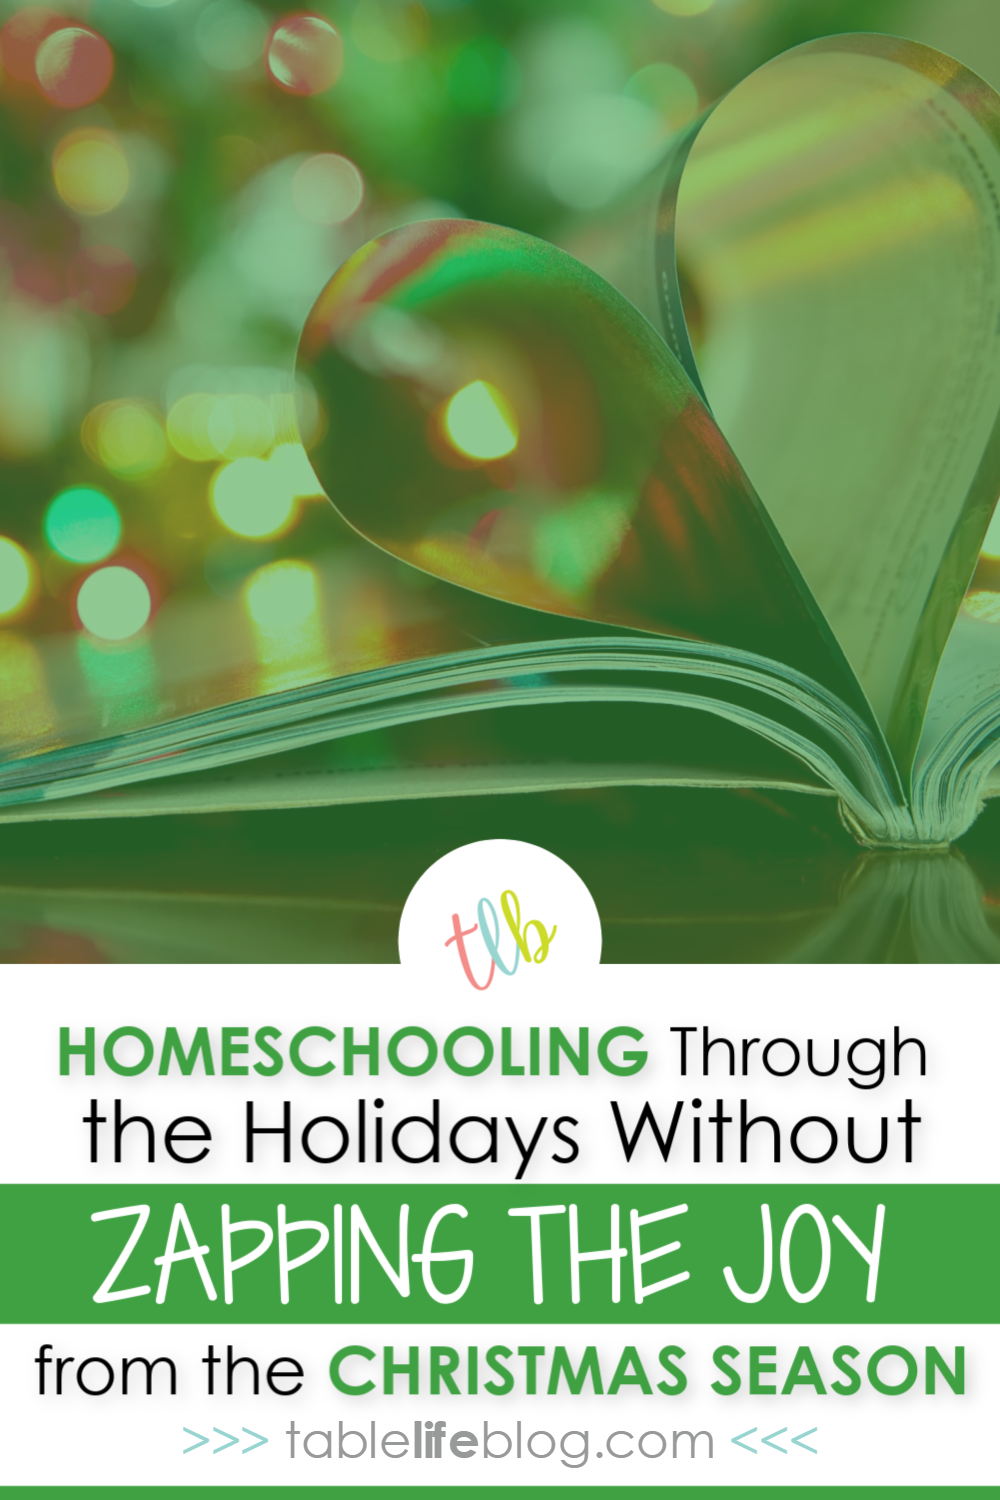 How We Homeschool Through the Holidays without Zapping Joy from the Christmas Season